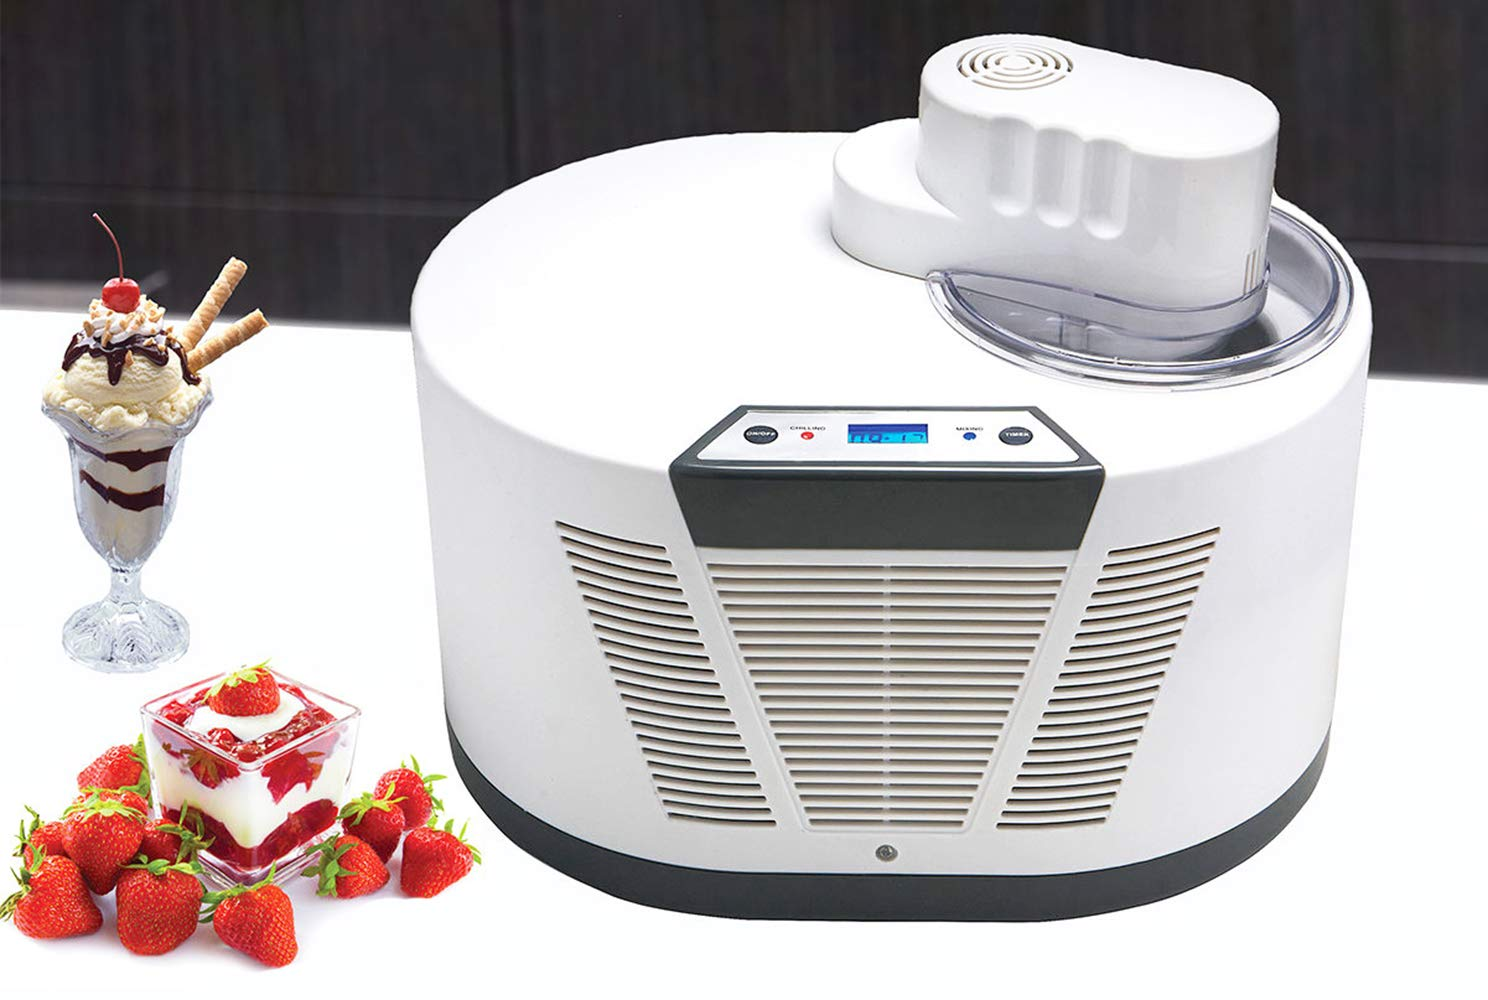 Hanchen Electric Ice Cream Maker Automatic Ice Cream Machine with Digital Display for Home and Commercial Use, Advanced Compressor,Computer Controlled Continuous Work for Kids Cuisinart Self-cooling Function,1100ml Capacity 30Min/Pot 12Balls/Pot with 3C Certificate 110V